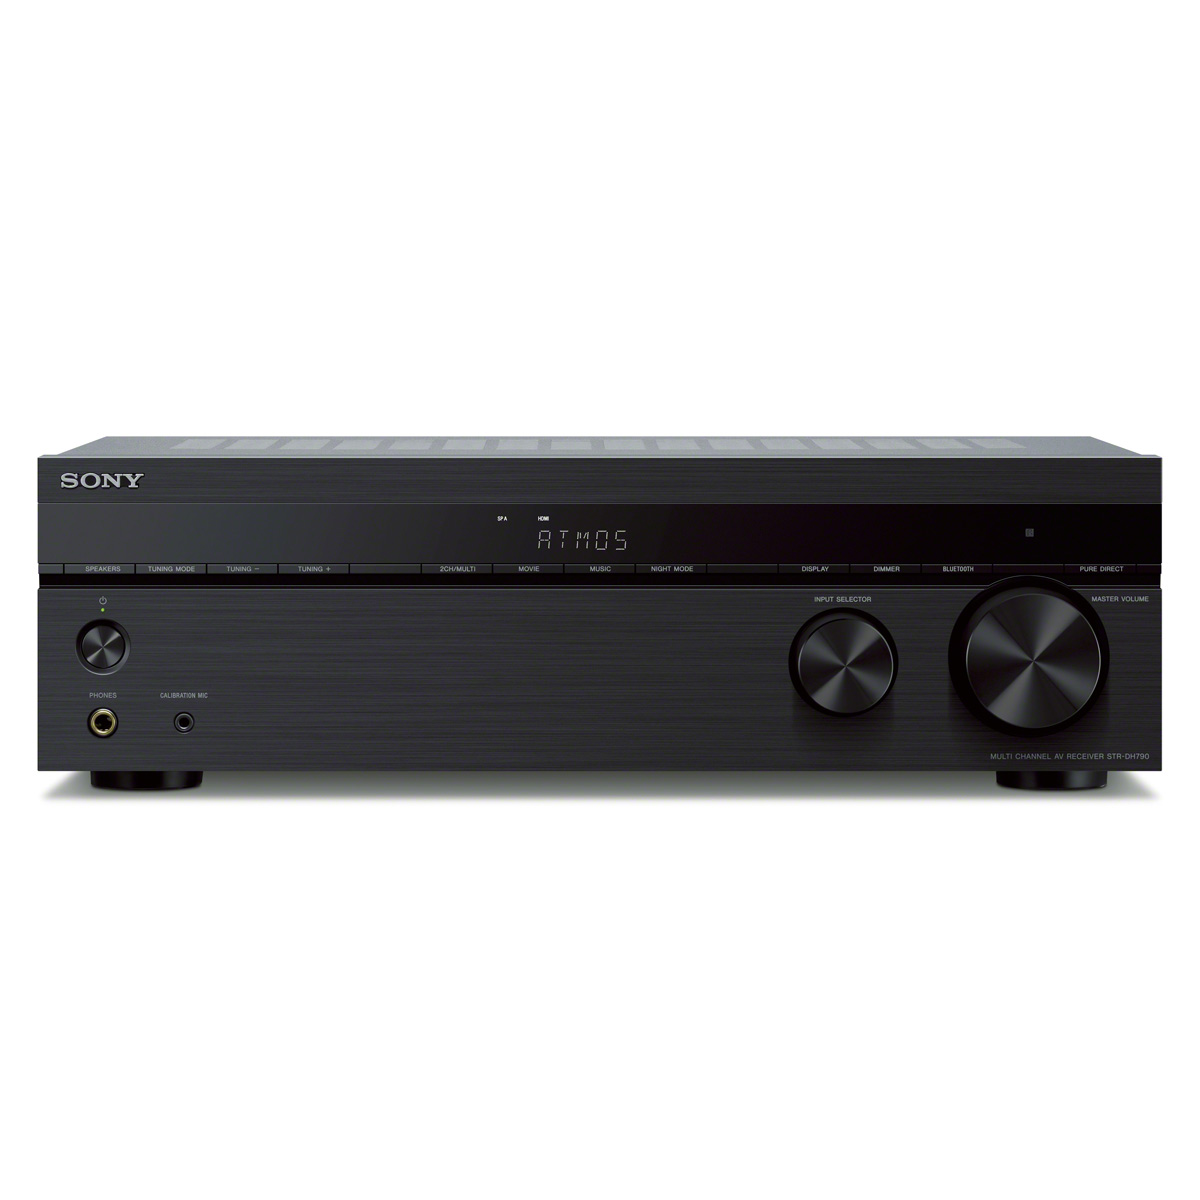 Details About Sony STR DH790 7.2 Channel Home Theater AV Receiver